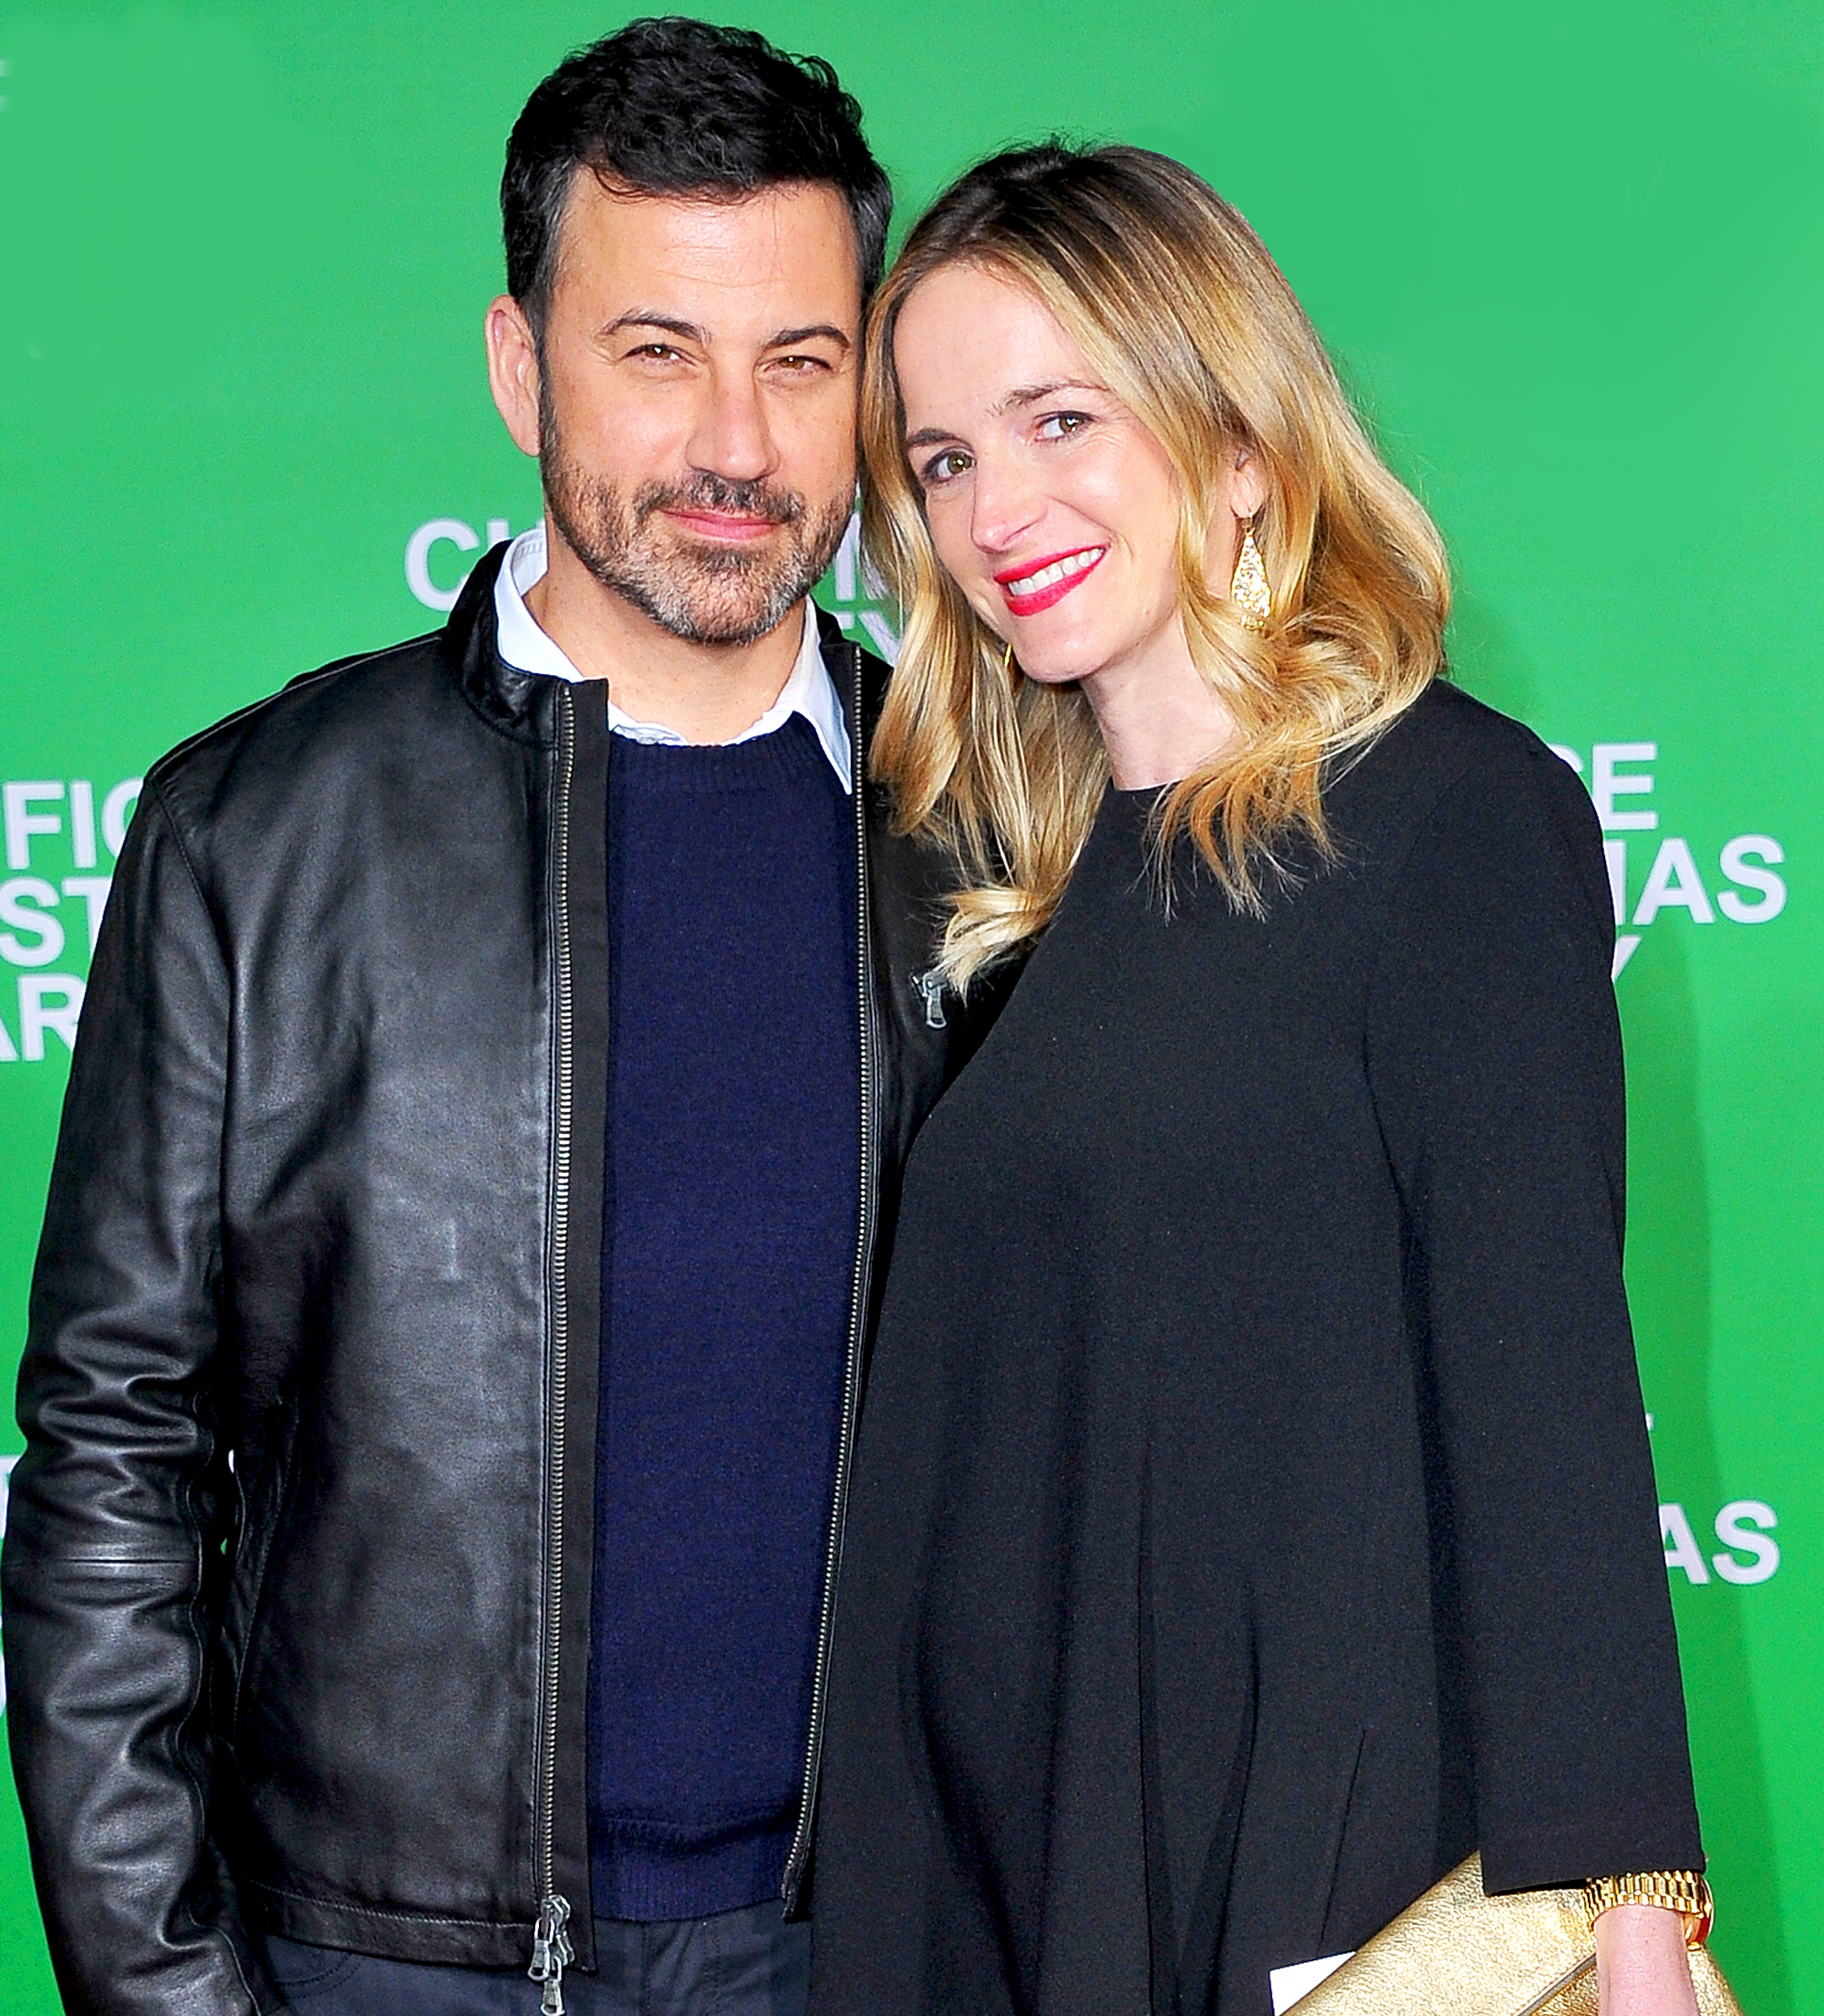 Jimmy Kimmel and wife Molly Mc Nearney attend the premiere of